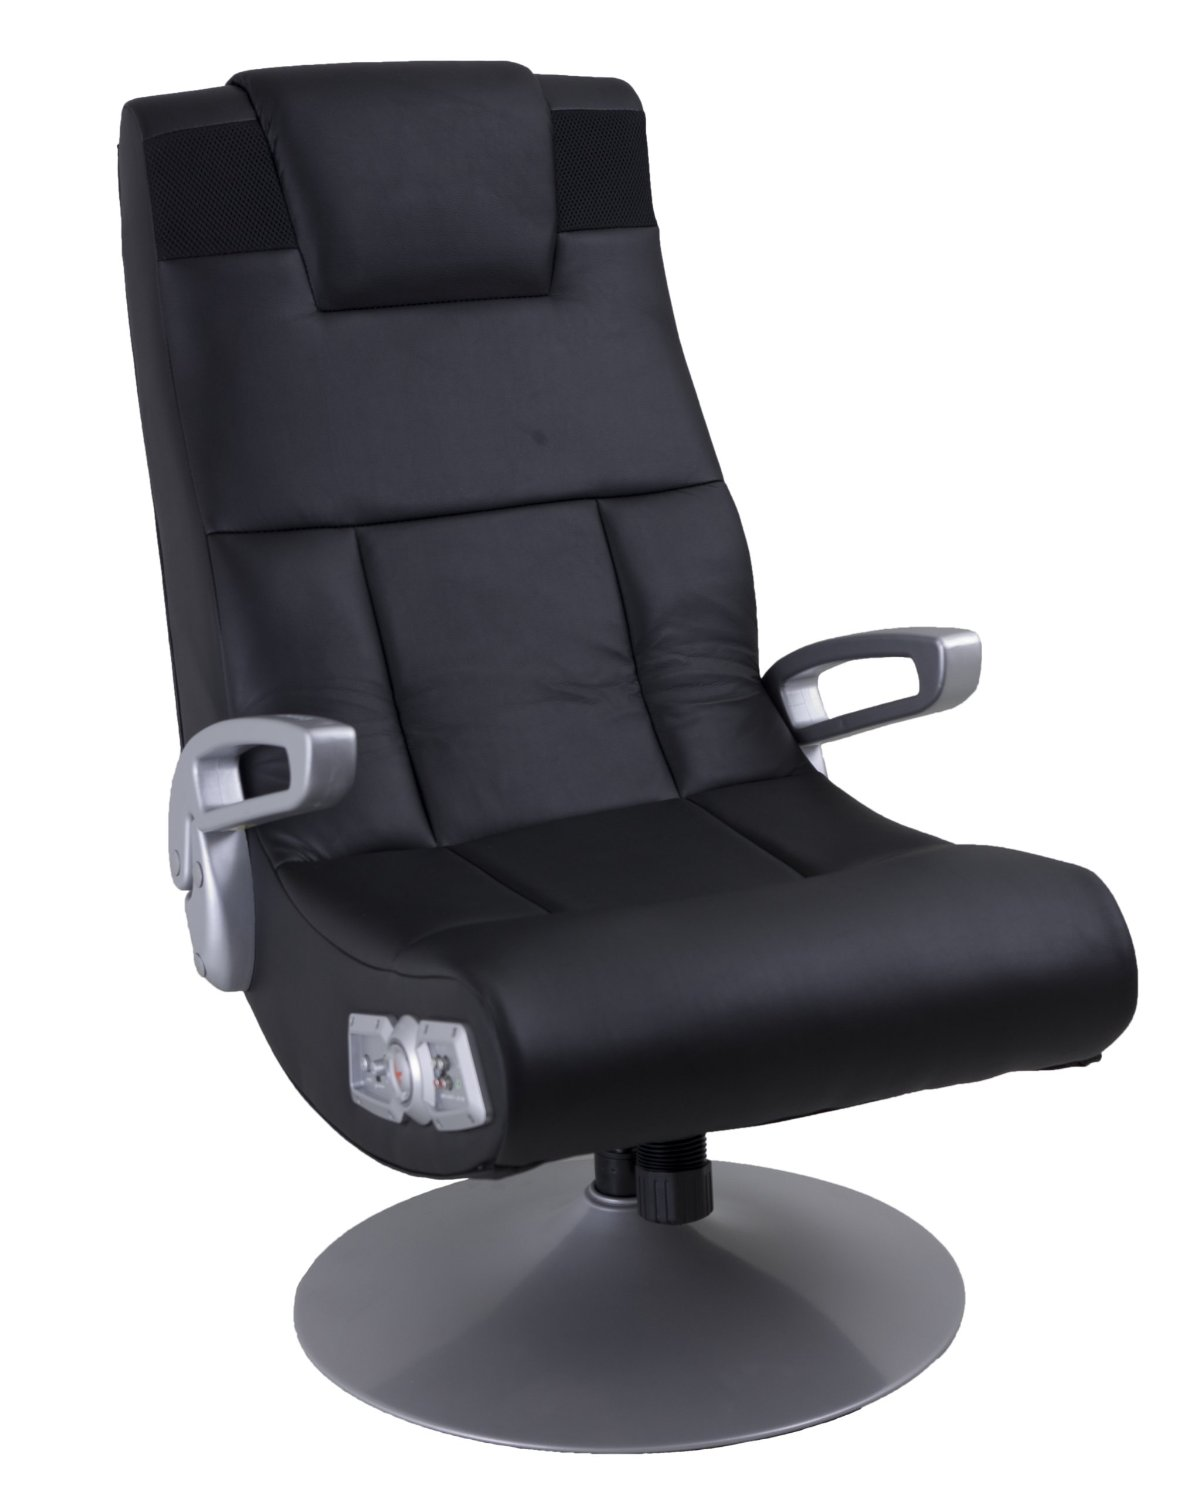 Game Chair Rocker 5 Video Gaming Chairs For Racing Accessories Lists